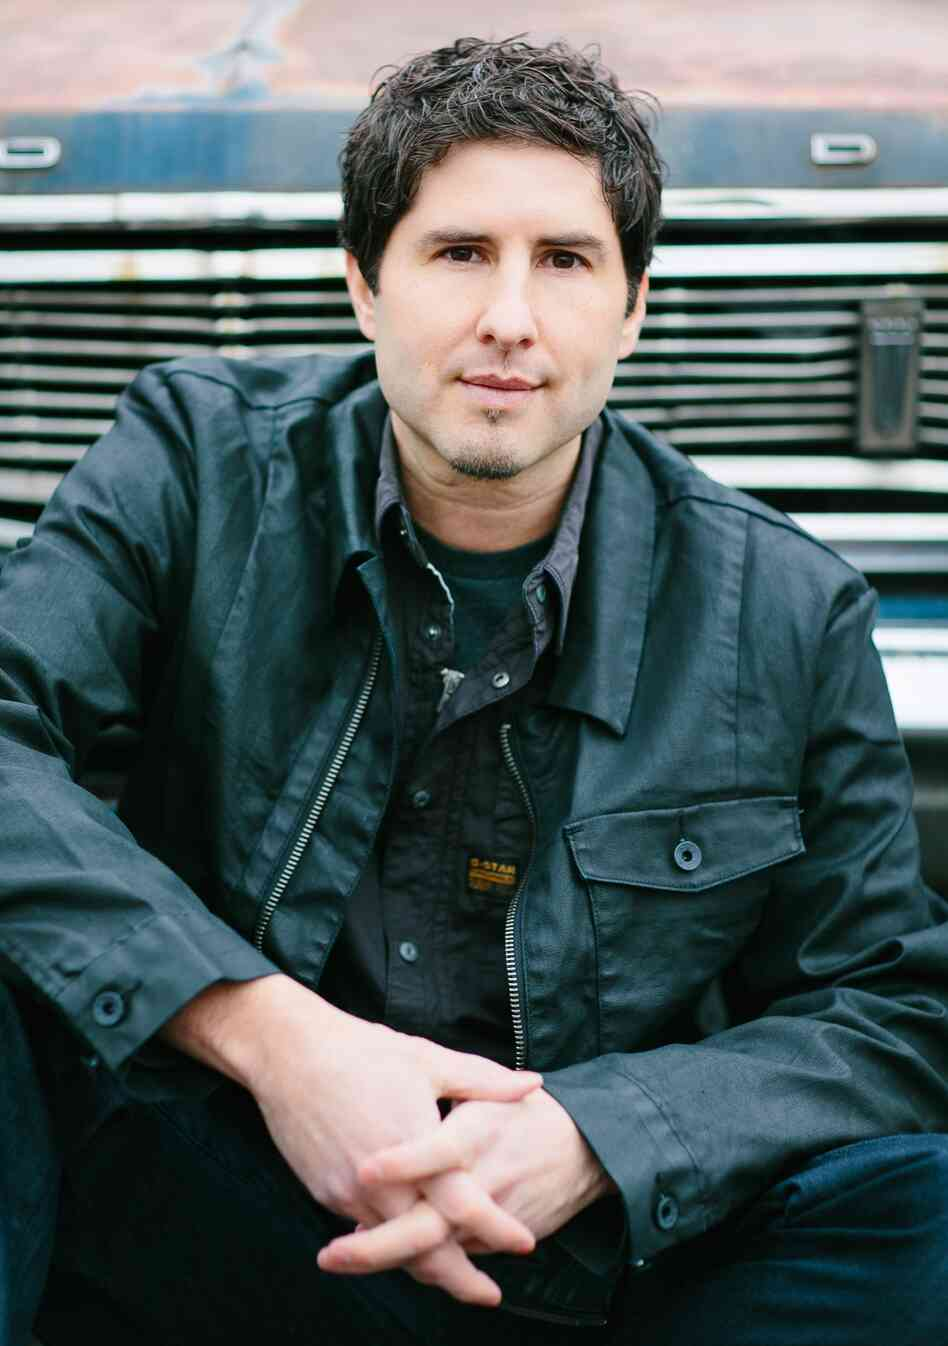 Matt de la Peña is the author of Ball Don't Lie, Mexican WhiteBoy, We Were Here, I Will Save You and, most recently, The Living.